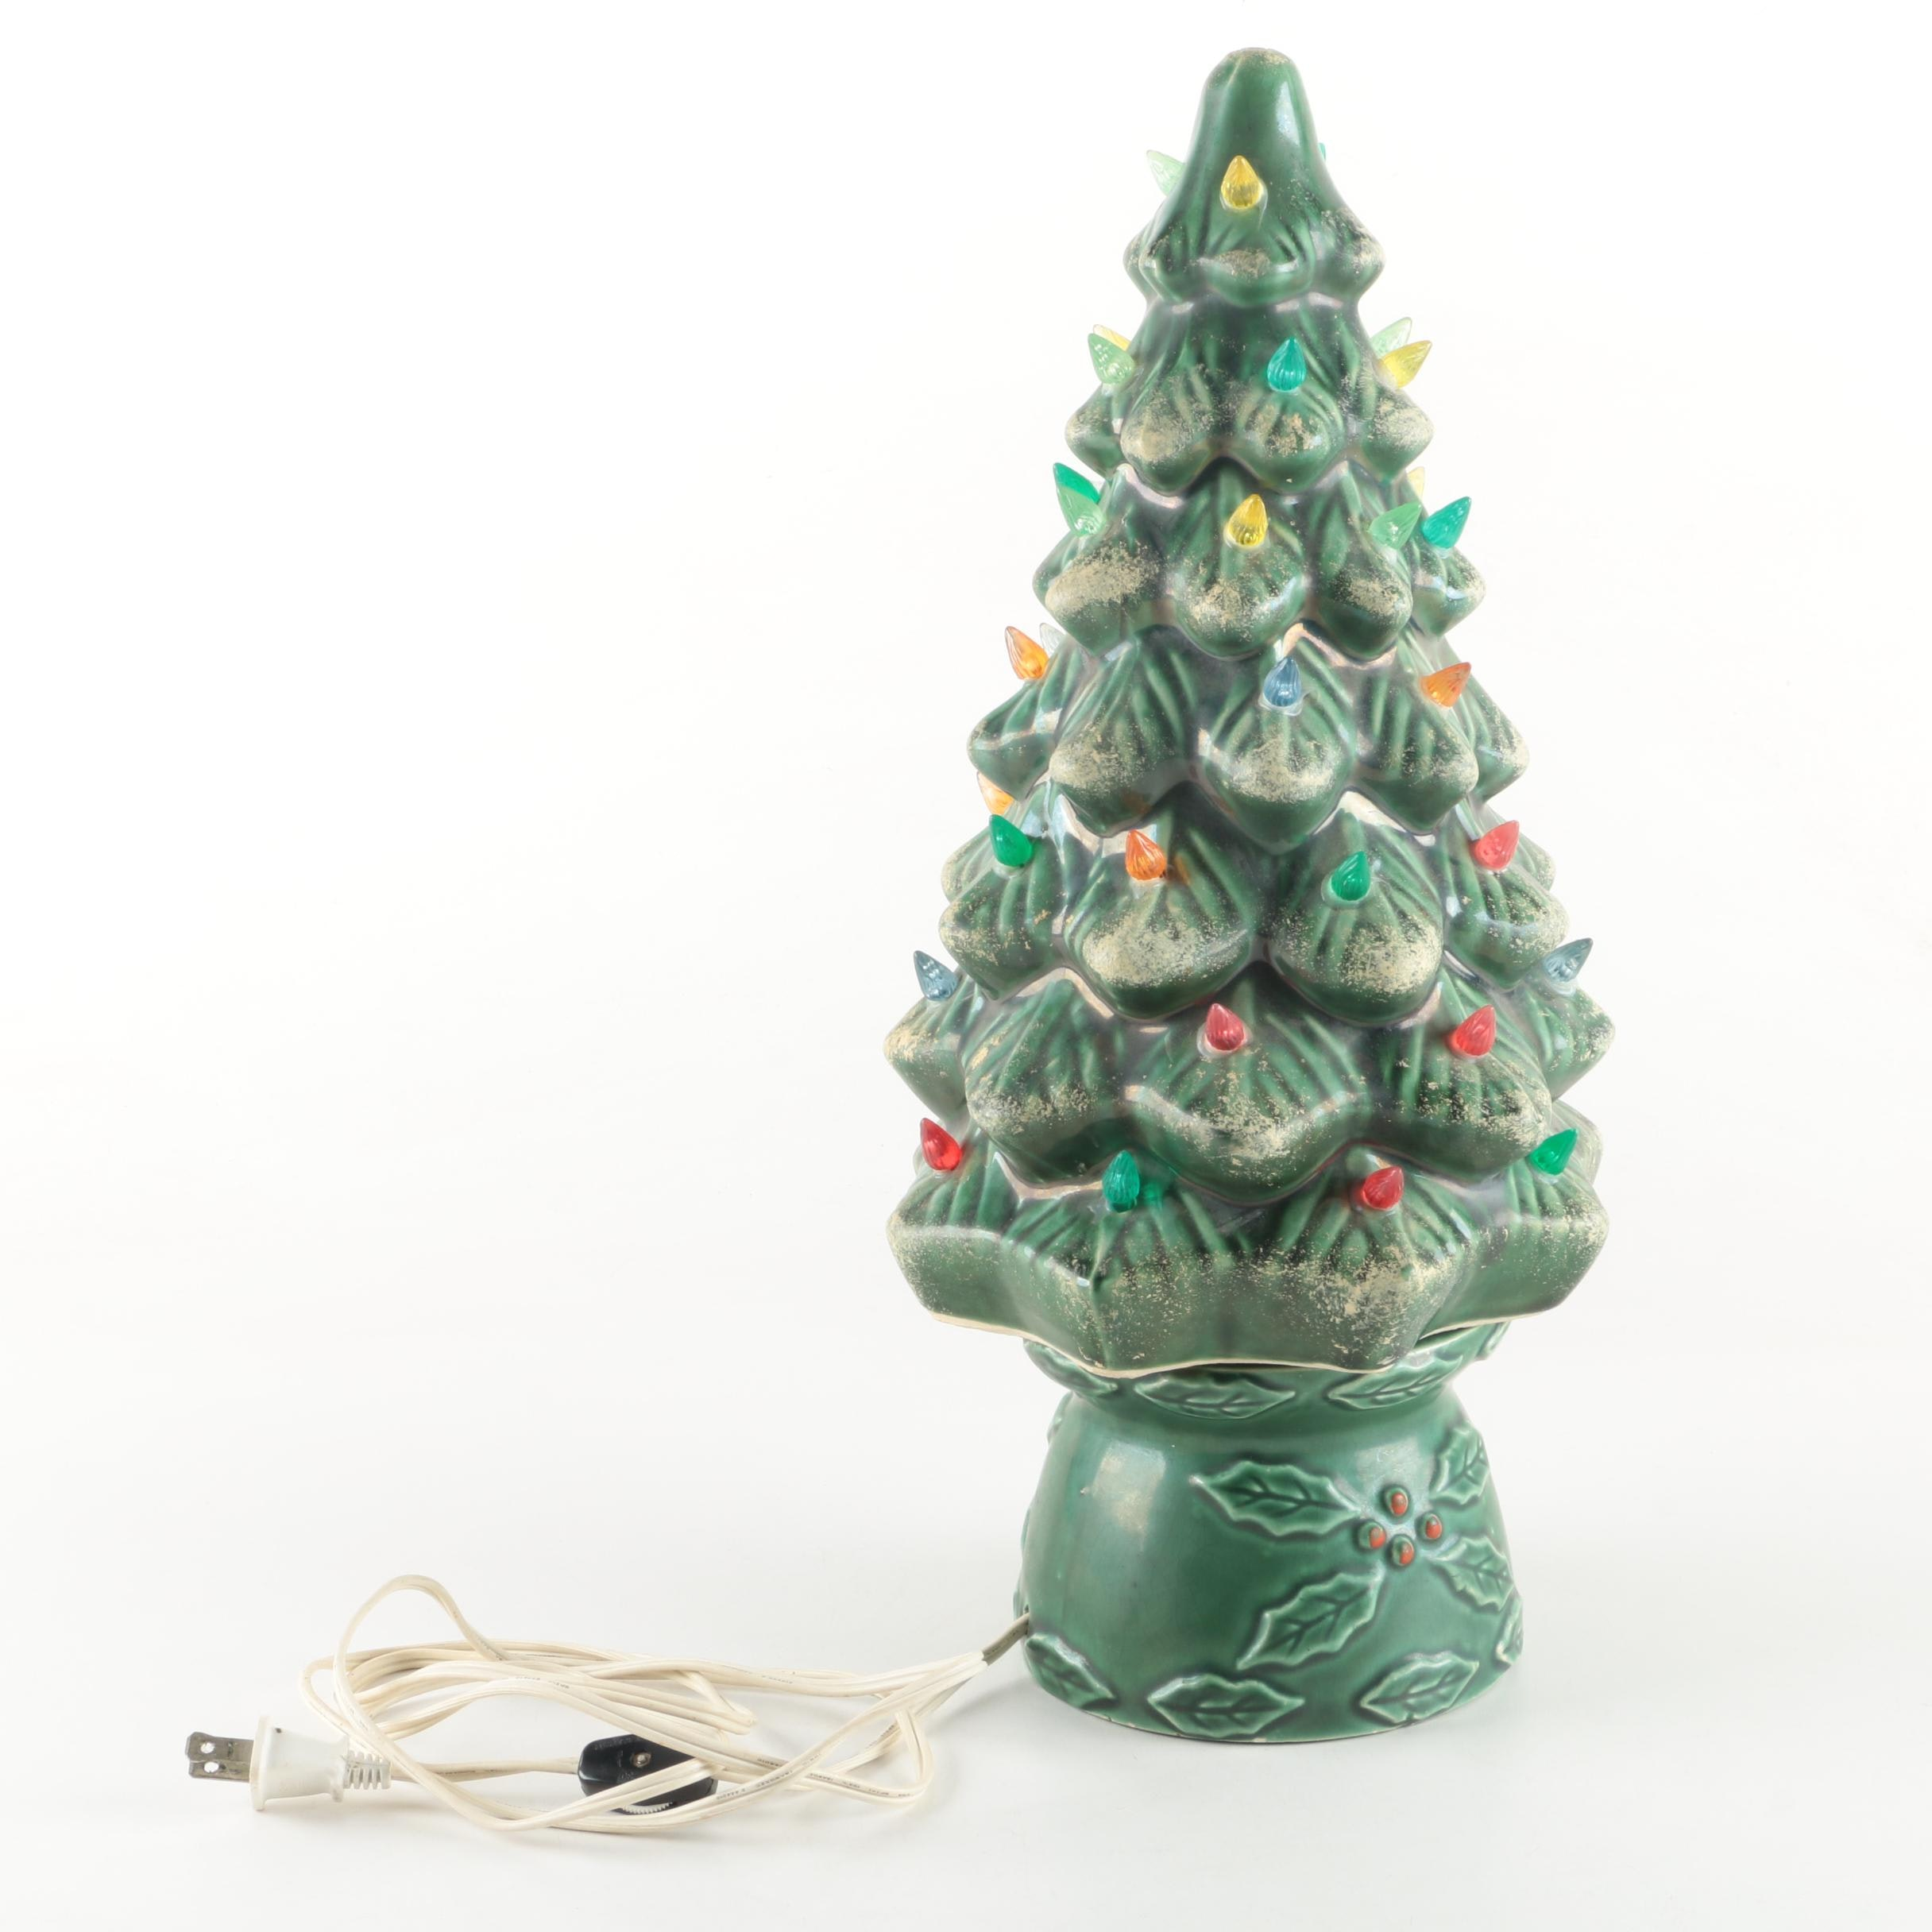 Green Ceramic Christmas Tree With Multicolor Lights and a Holly Base